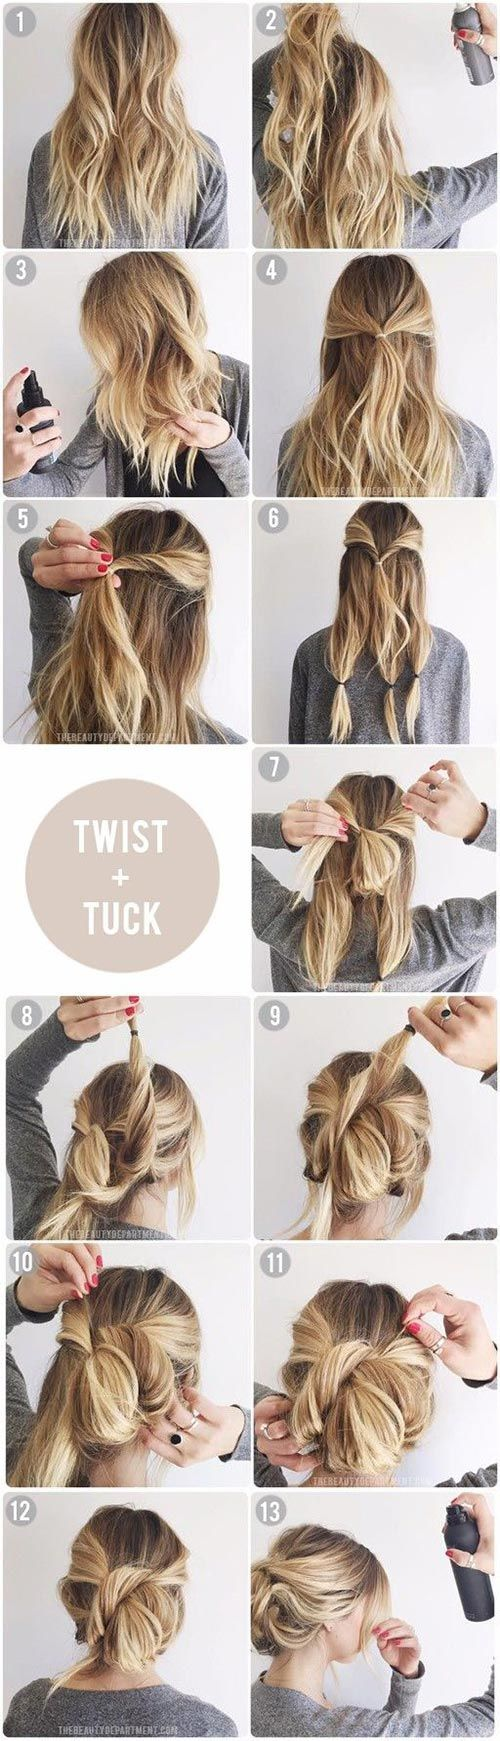 Everyday Easy Updos to Make Daily Styling Faster - Twisted and Tuck Updo